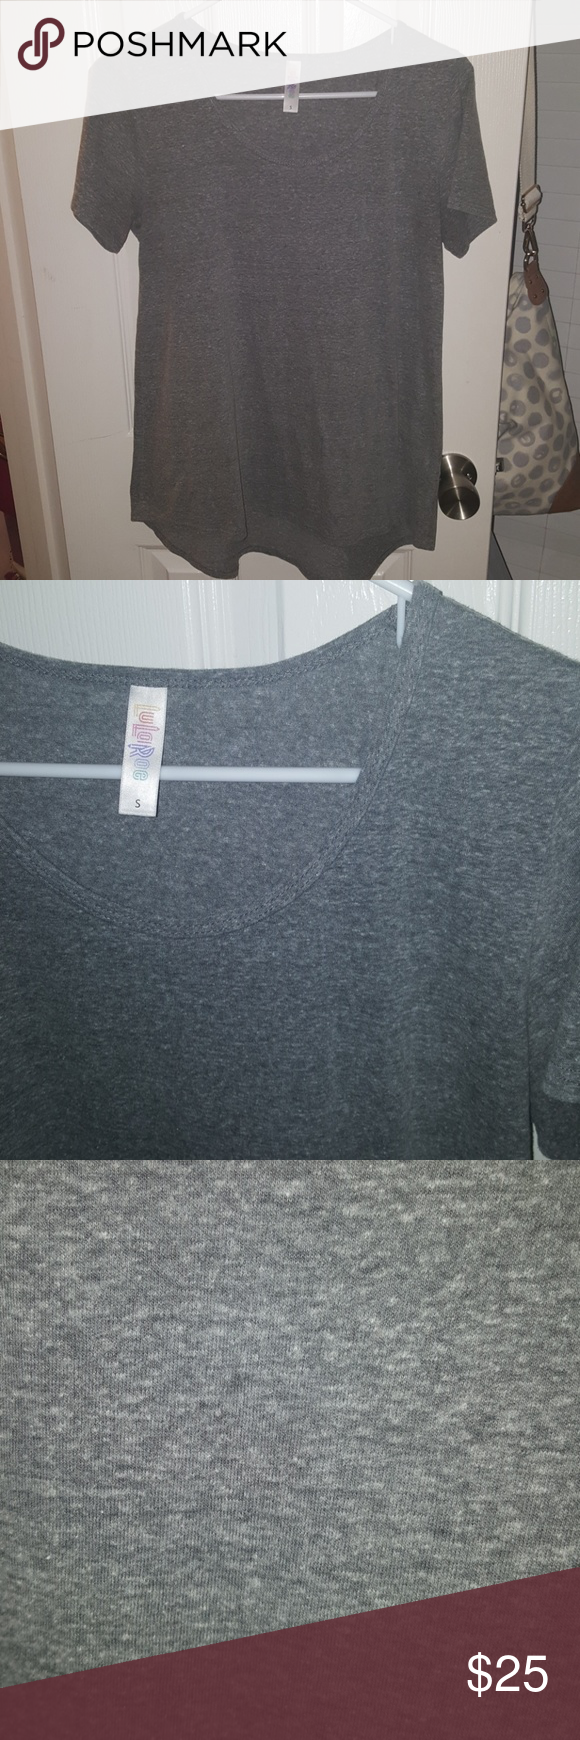 LuLaRoe Heathered Gray Classic Tee Small EUC Excellent condition- no flaws. Smoke and pet free home. So incredibly soft and comfy! Hard to find solid heathered gray! This will go with everything! Will ship within 2 business days. LuLaRoe Tops Tees - Short Sleeve